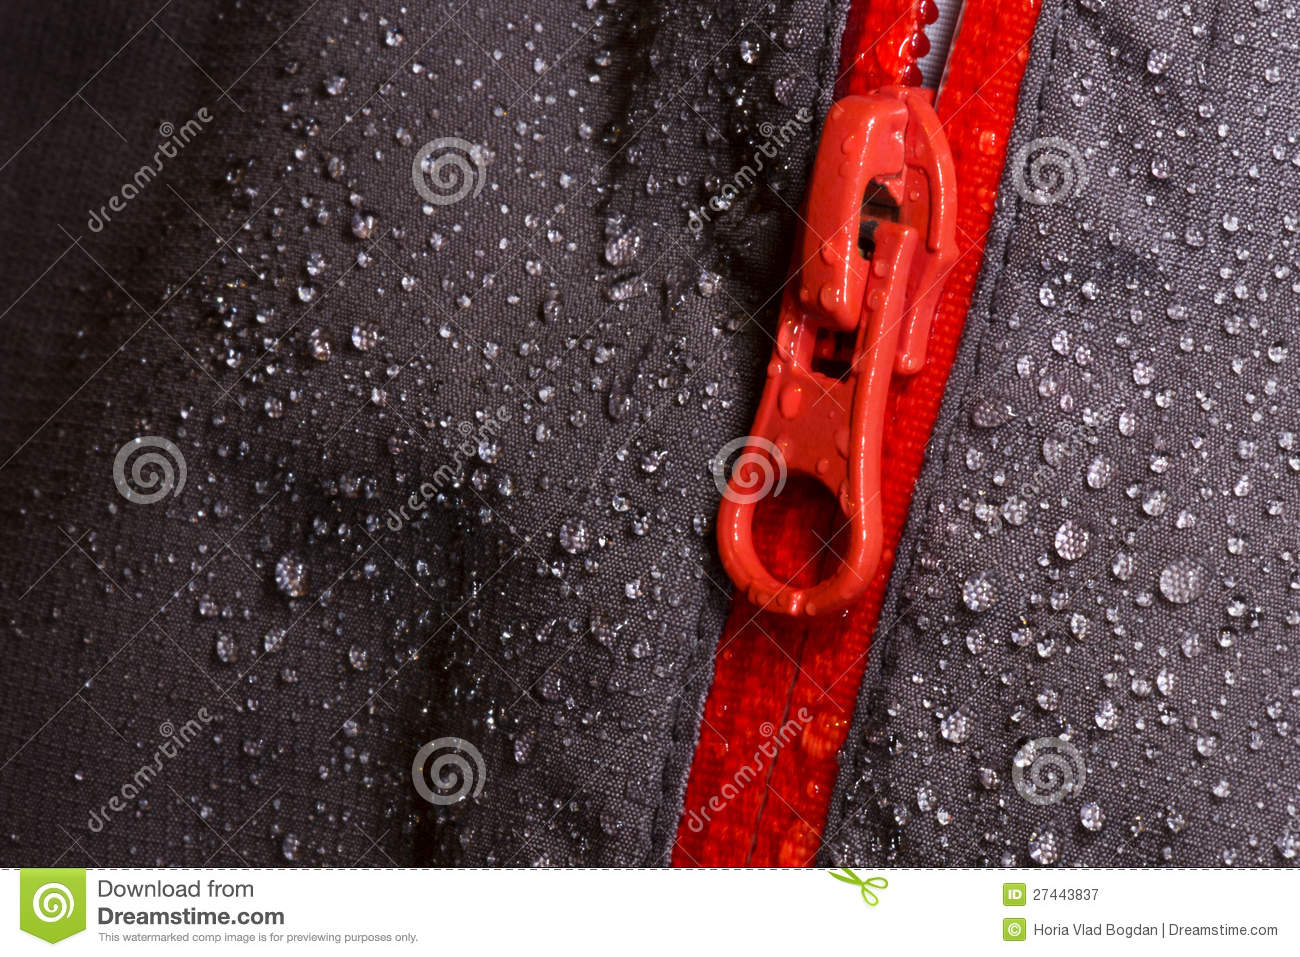 Waterproof Fabric And Zipper For Outdoors Stock Image